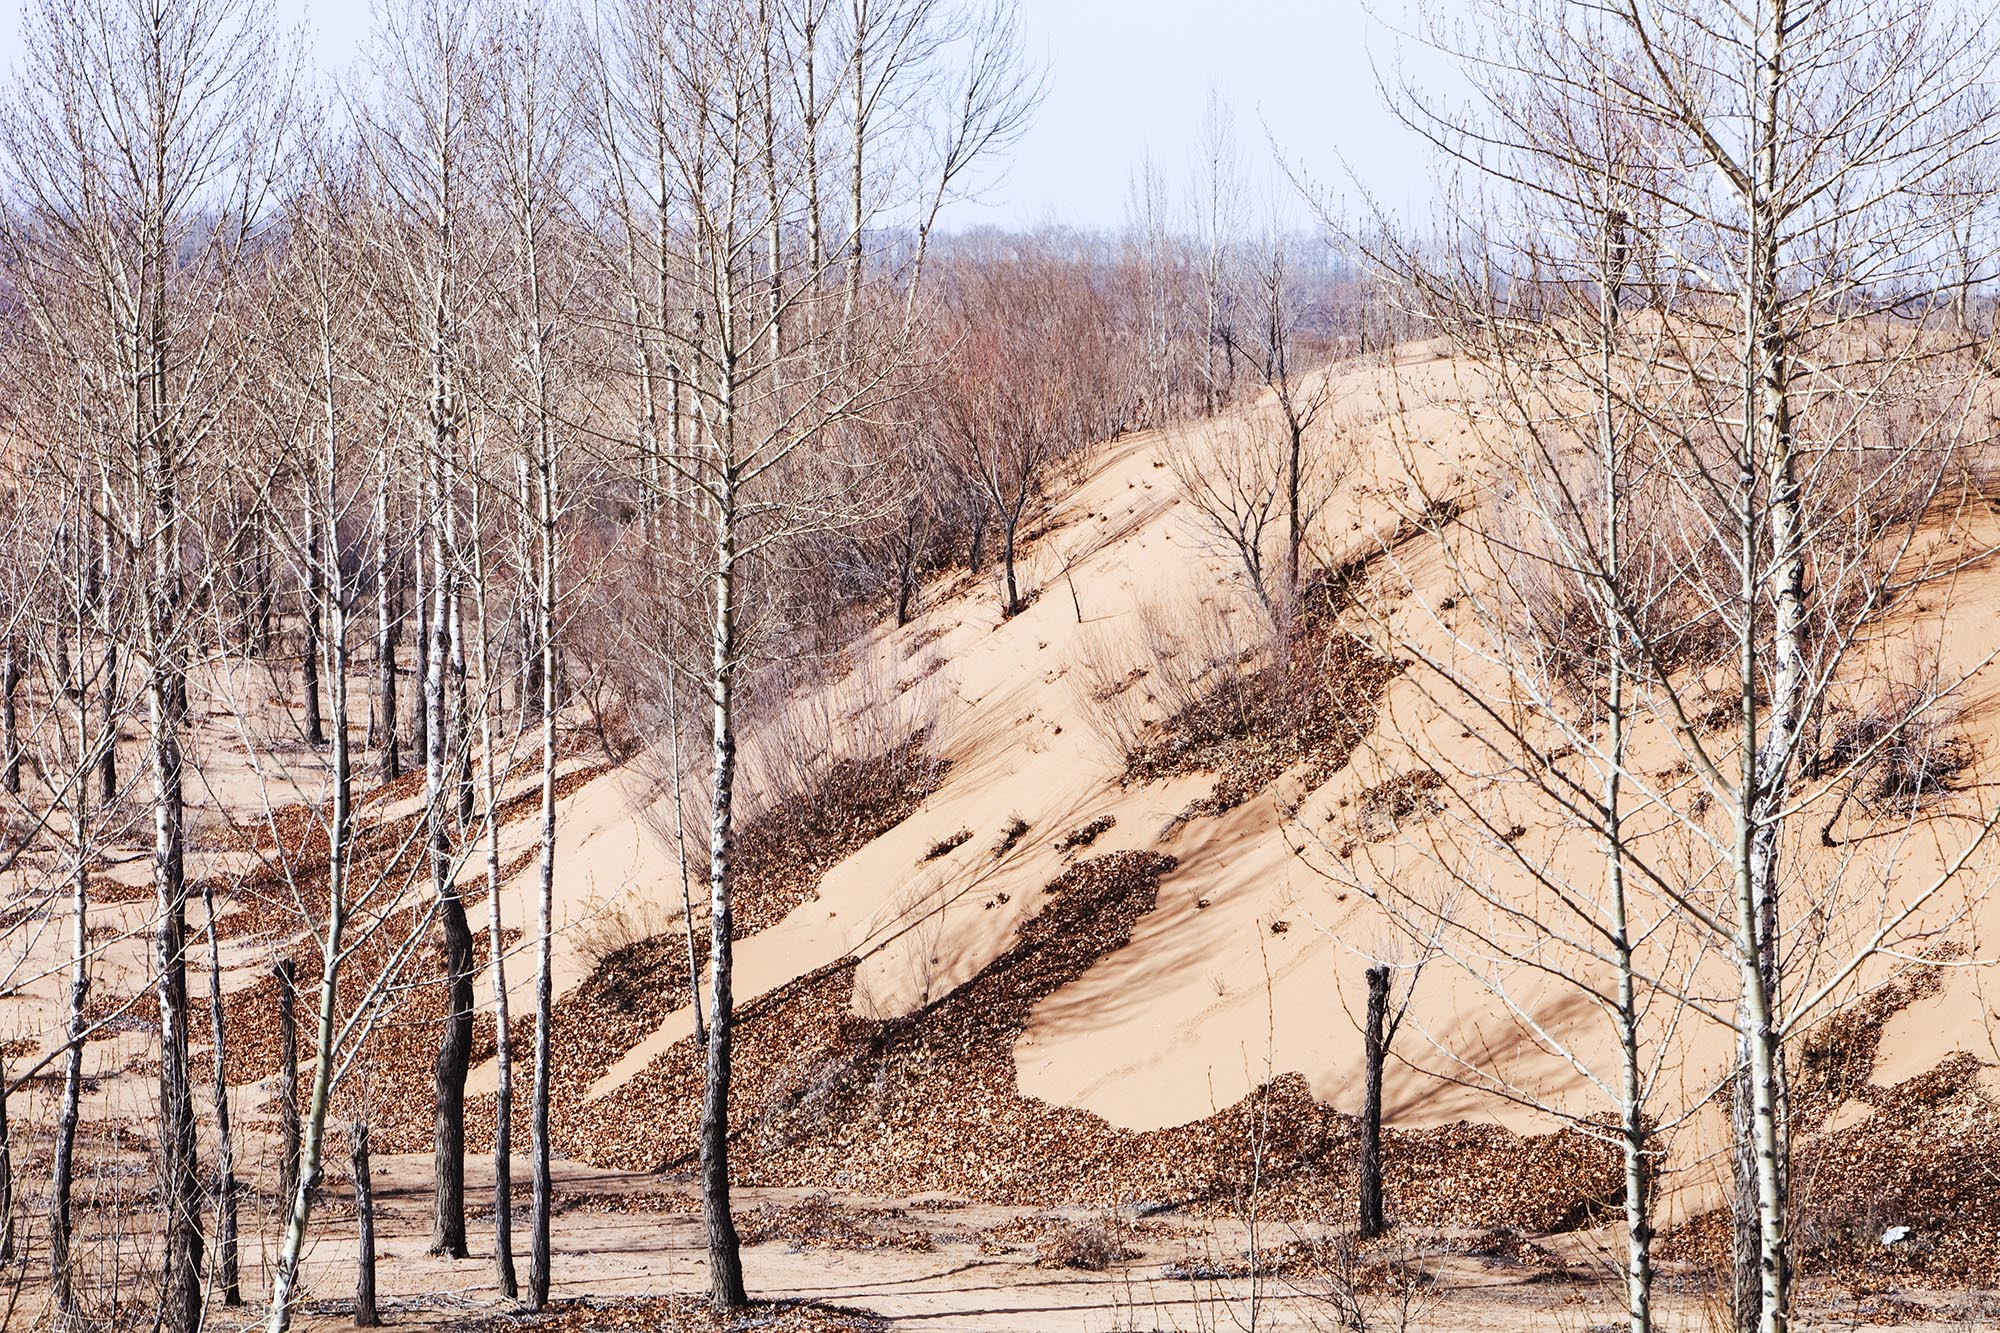 Sand dunes expanding and swallowing up forest in Shanxi province in China. The province has been particularly badly hit by an ongoing drought with ever drier conditions and creeping desertification.